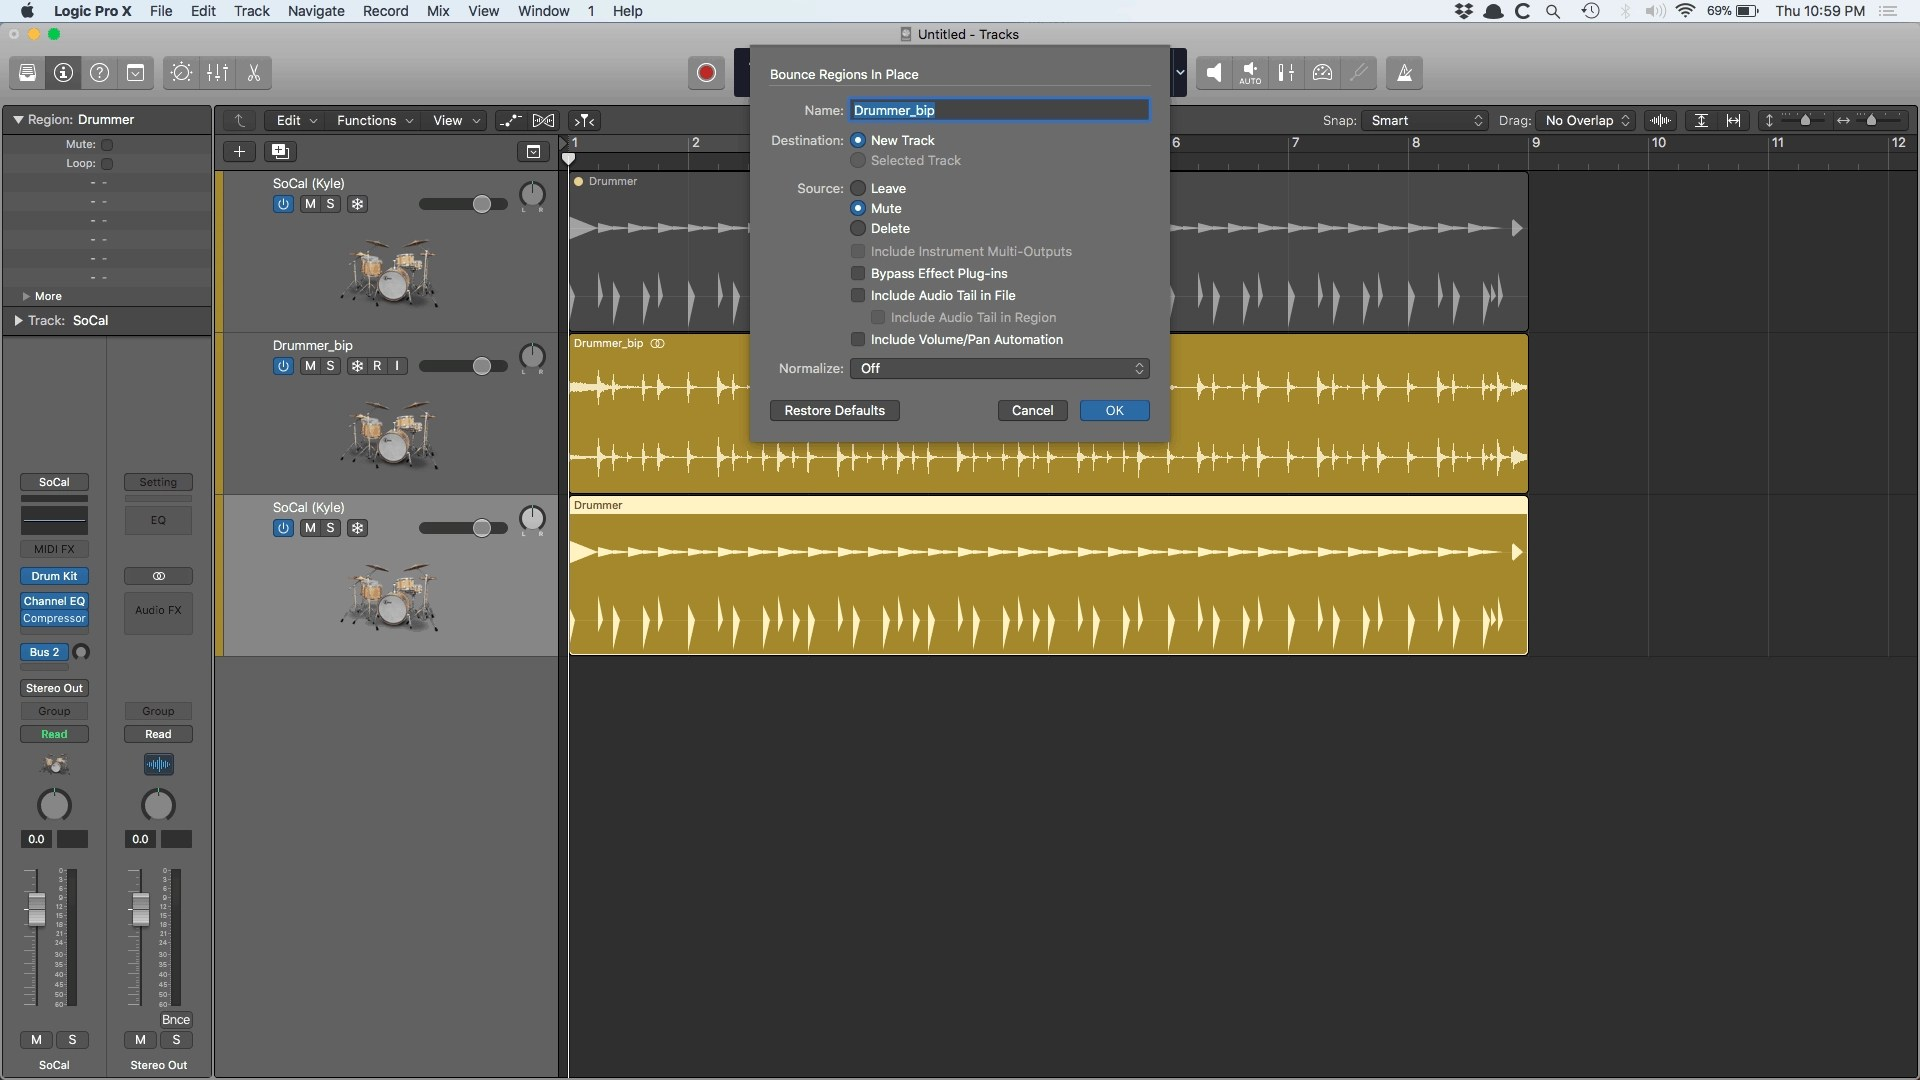 Logic Pro X Drummer Bounce in Place